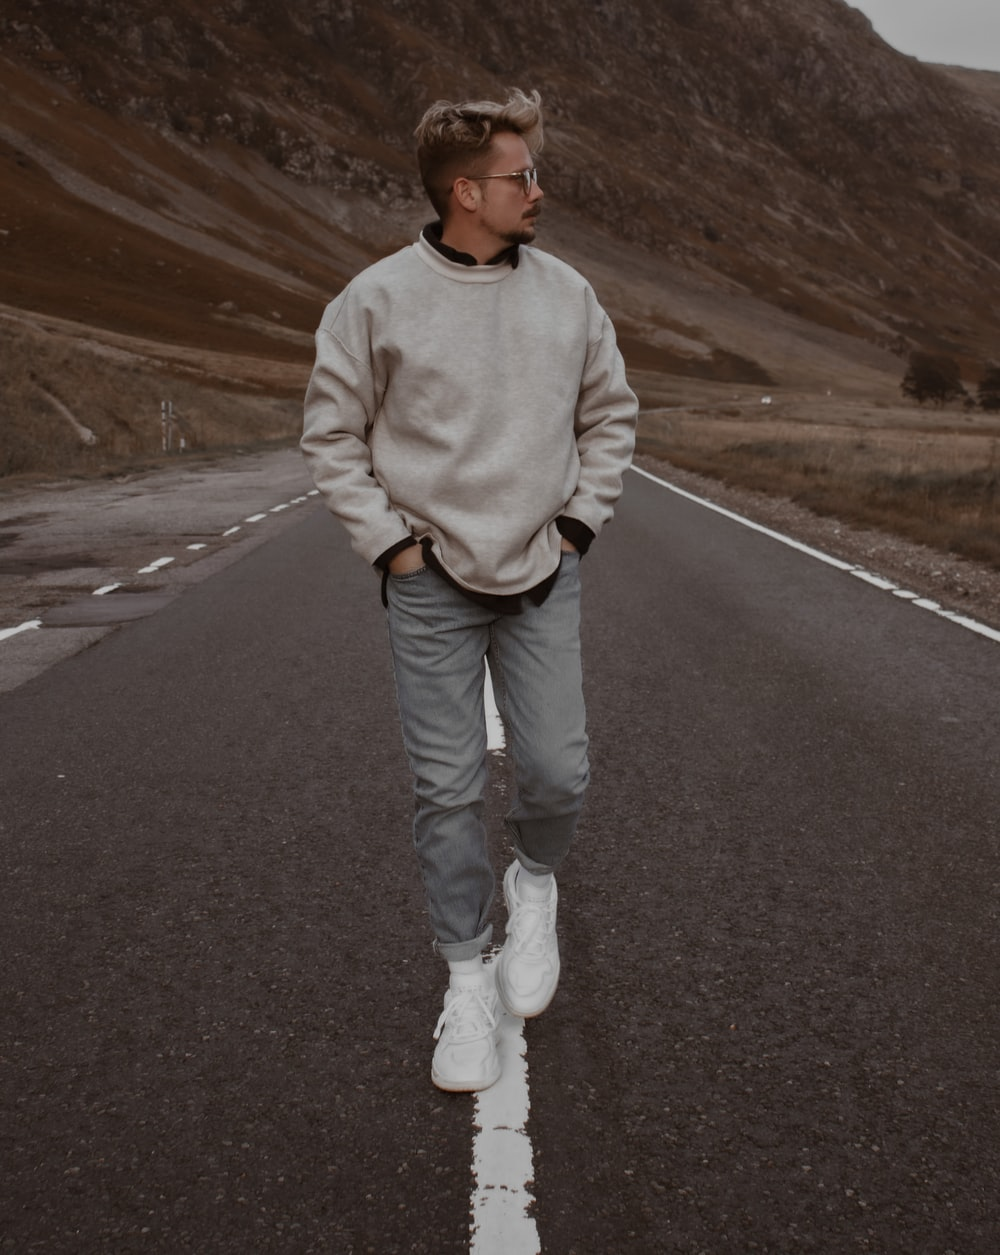 man in white sweater and blue denim jeans standing on gray asphalt road during daytime